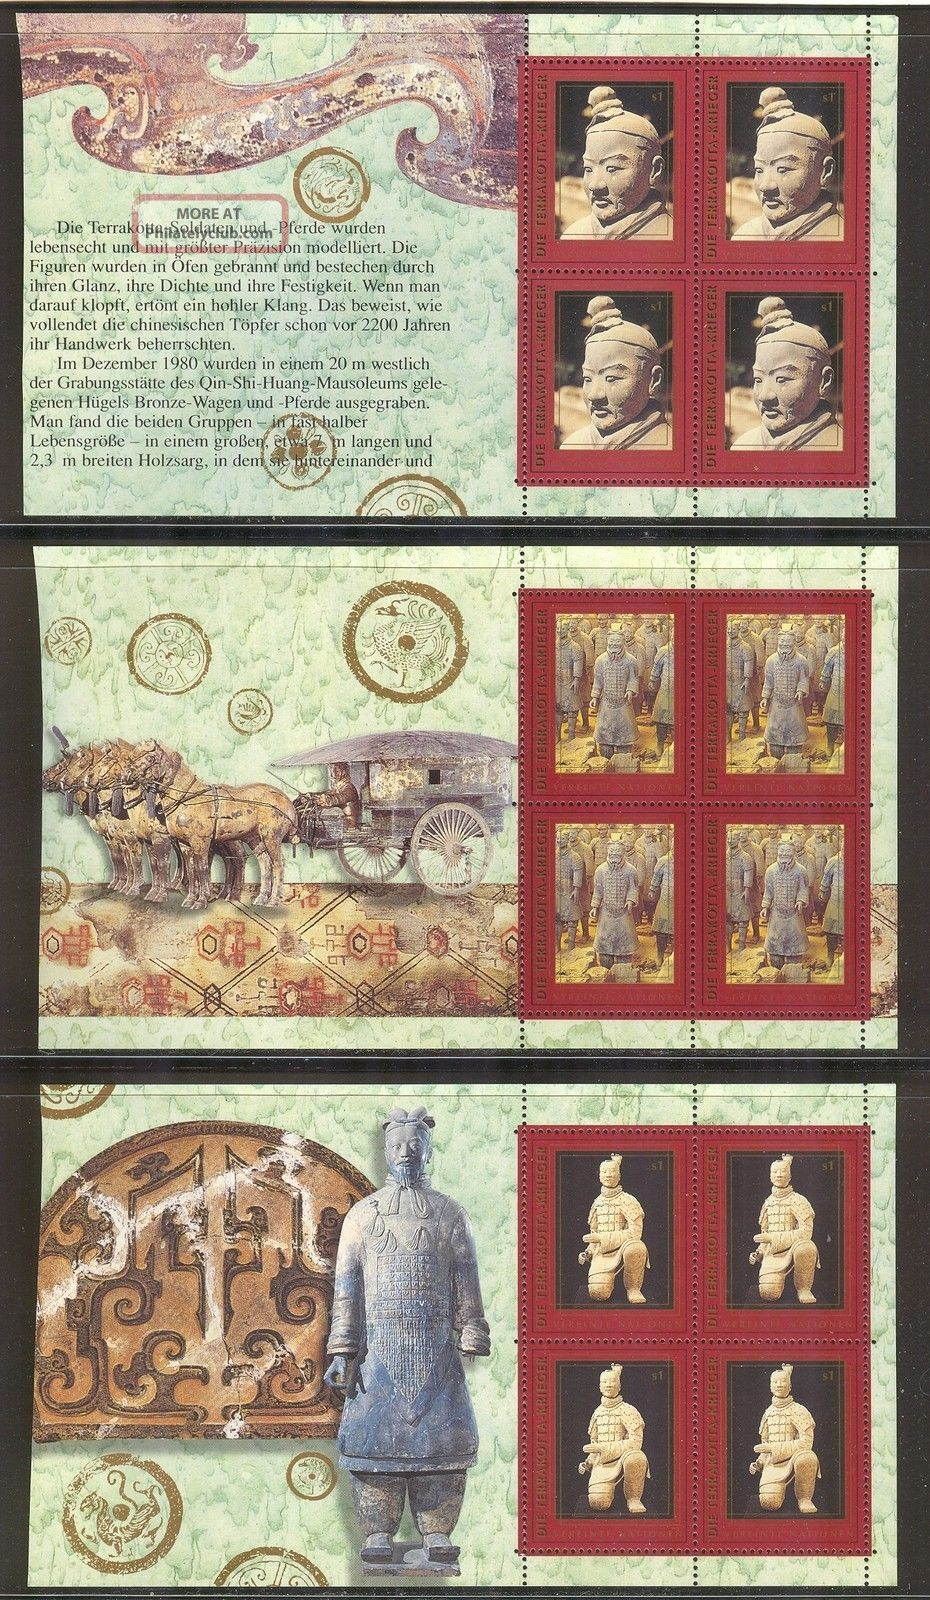 United Nations Vienna (u.  N.  /un) 1997 232g - 232l Terracotta Warrior Booklet Panes Worldwide photo